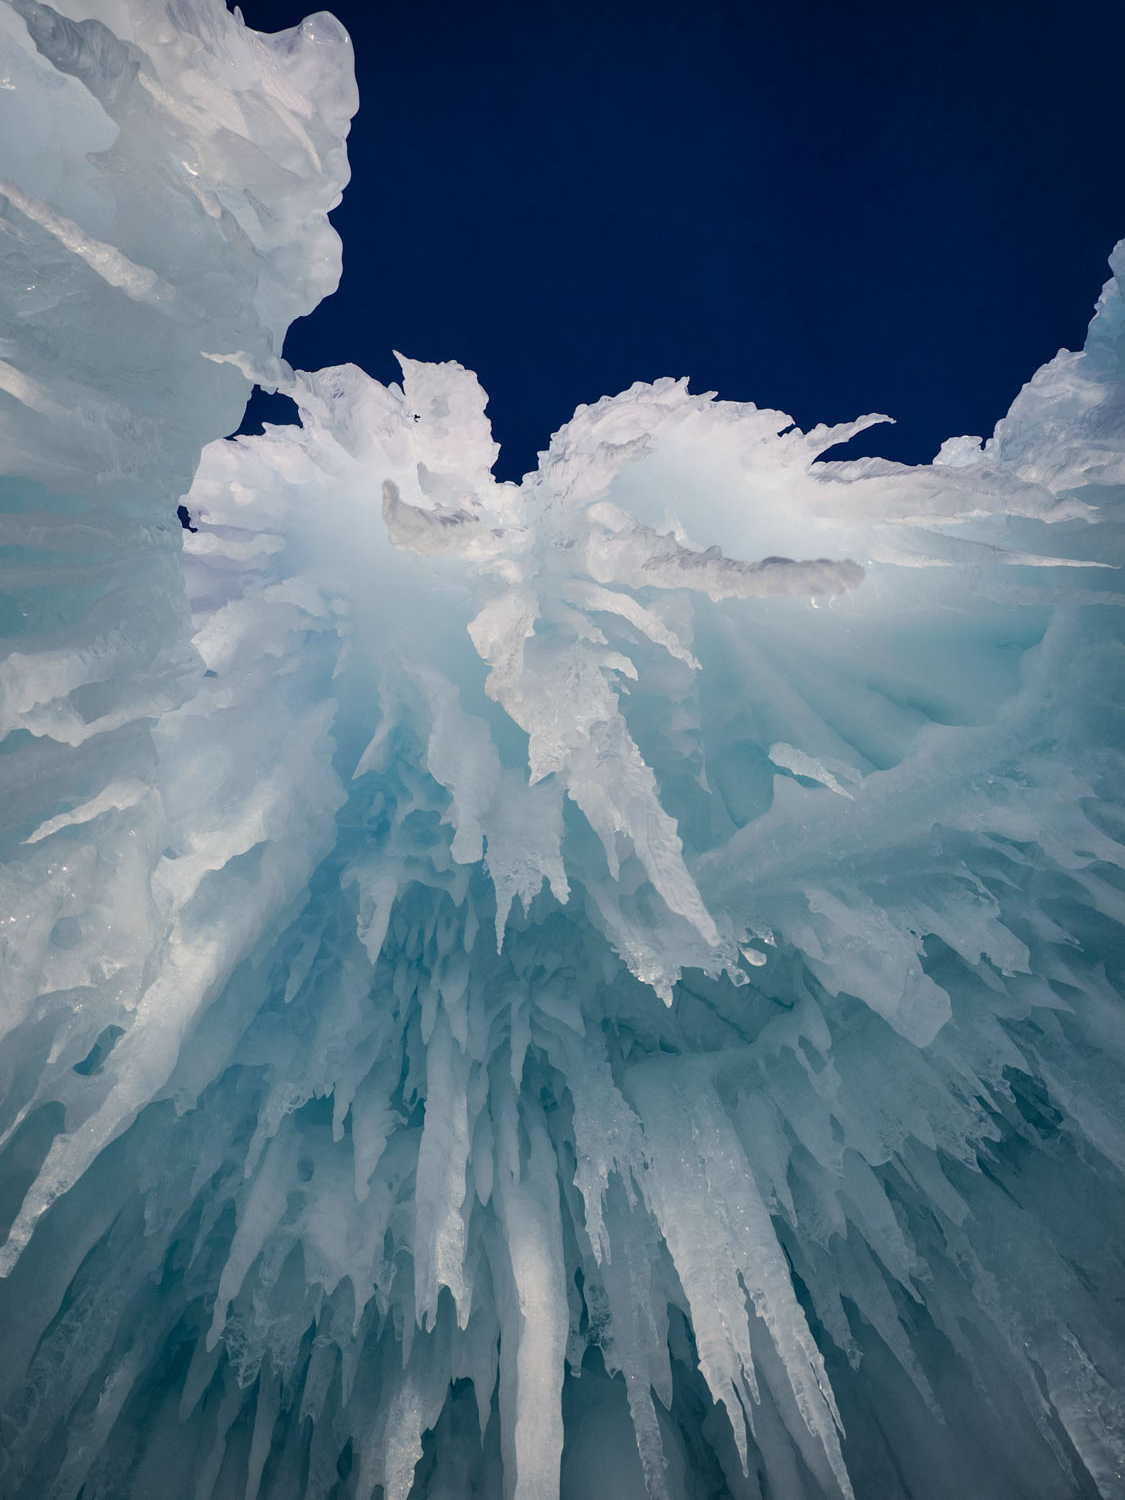 Image of icicles that will be resized for printing